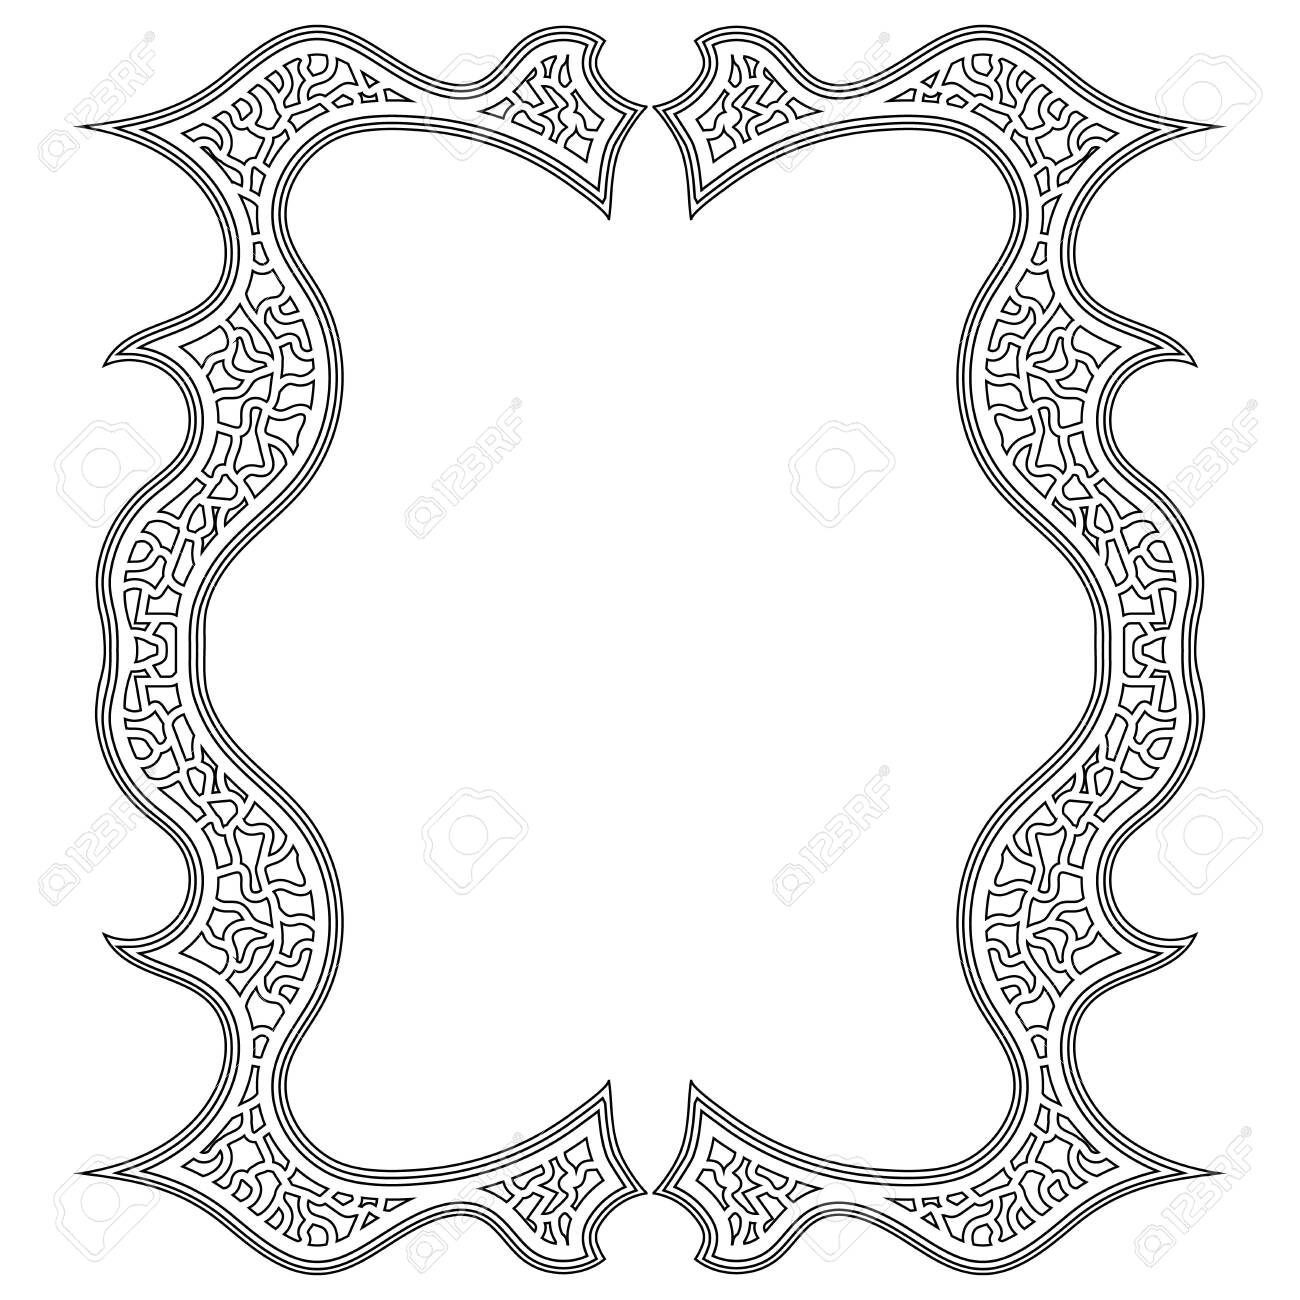 Illustration Of A Tangled Frame For Antistress Coloring Book Royalty Free Cliparts Vectors And Stock Illustration Image 137167037